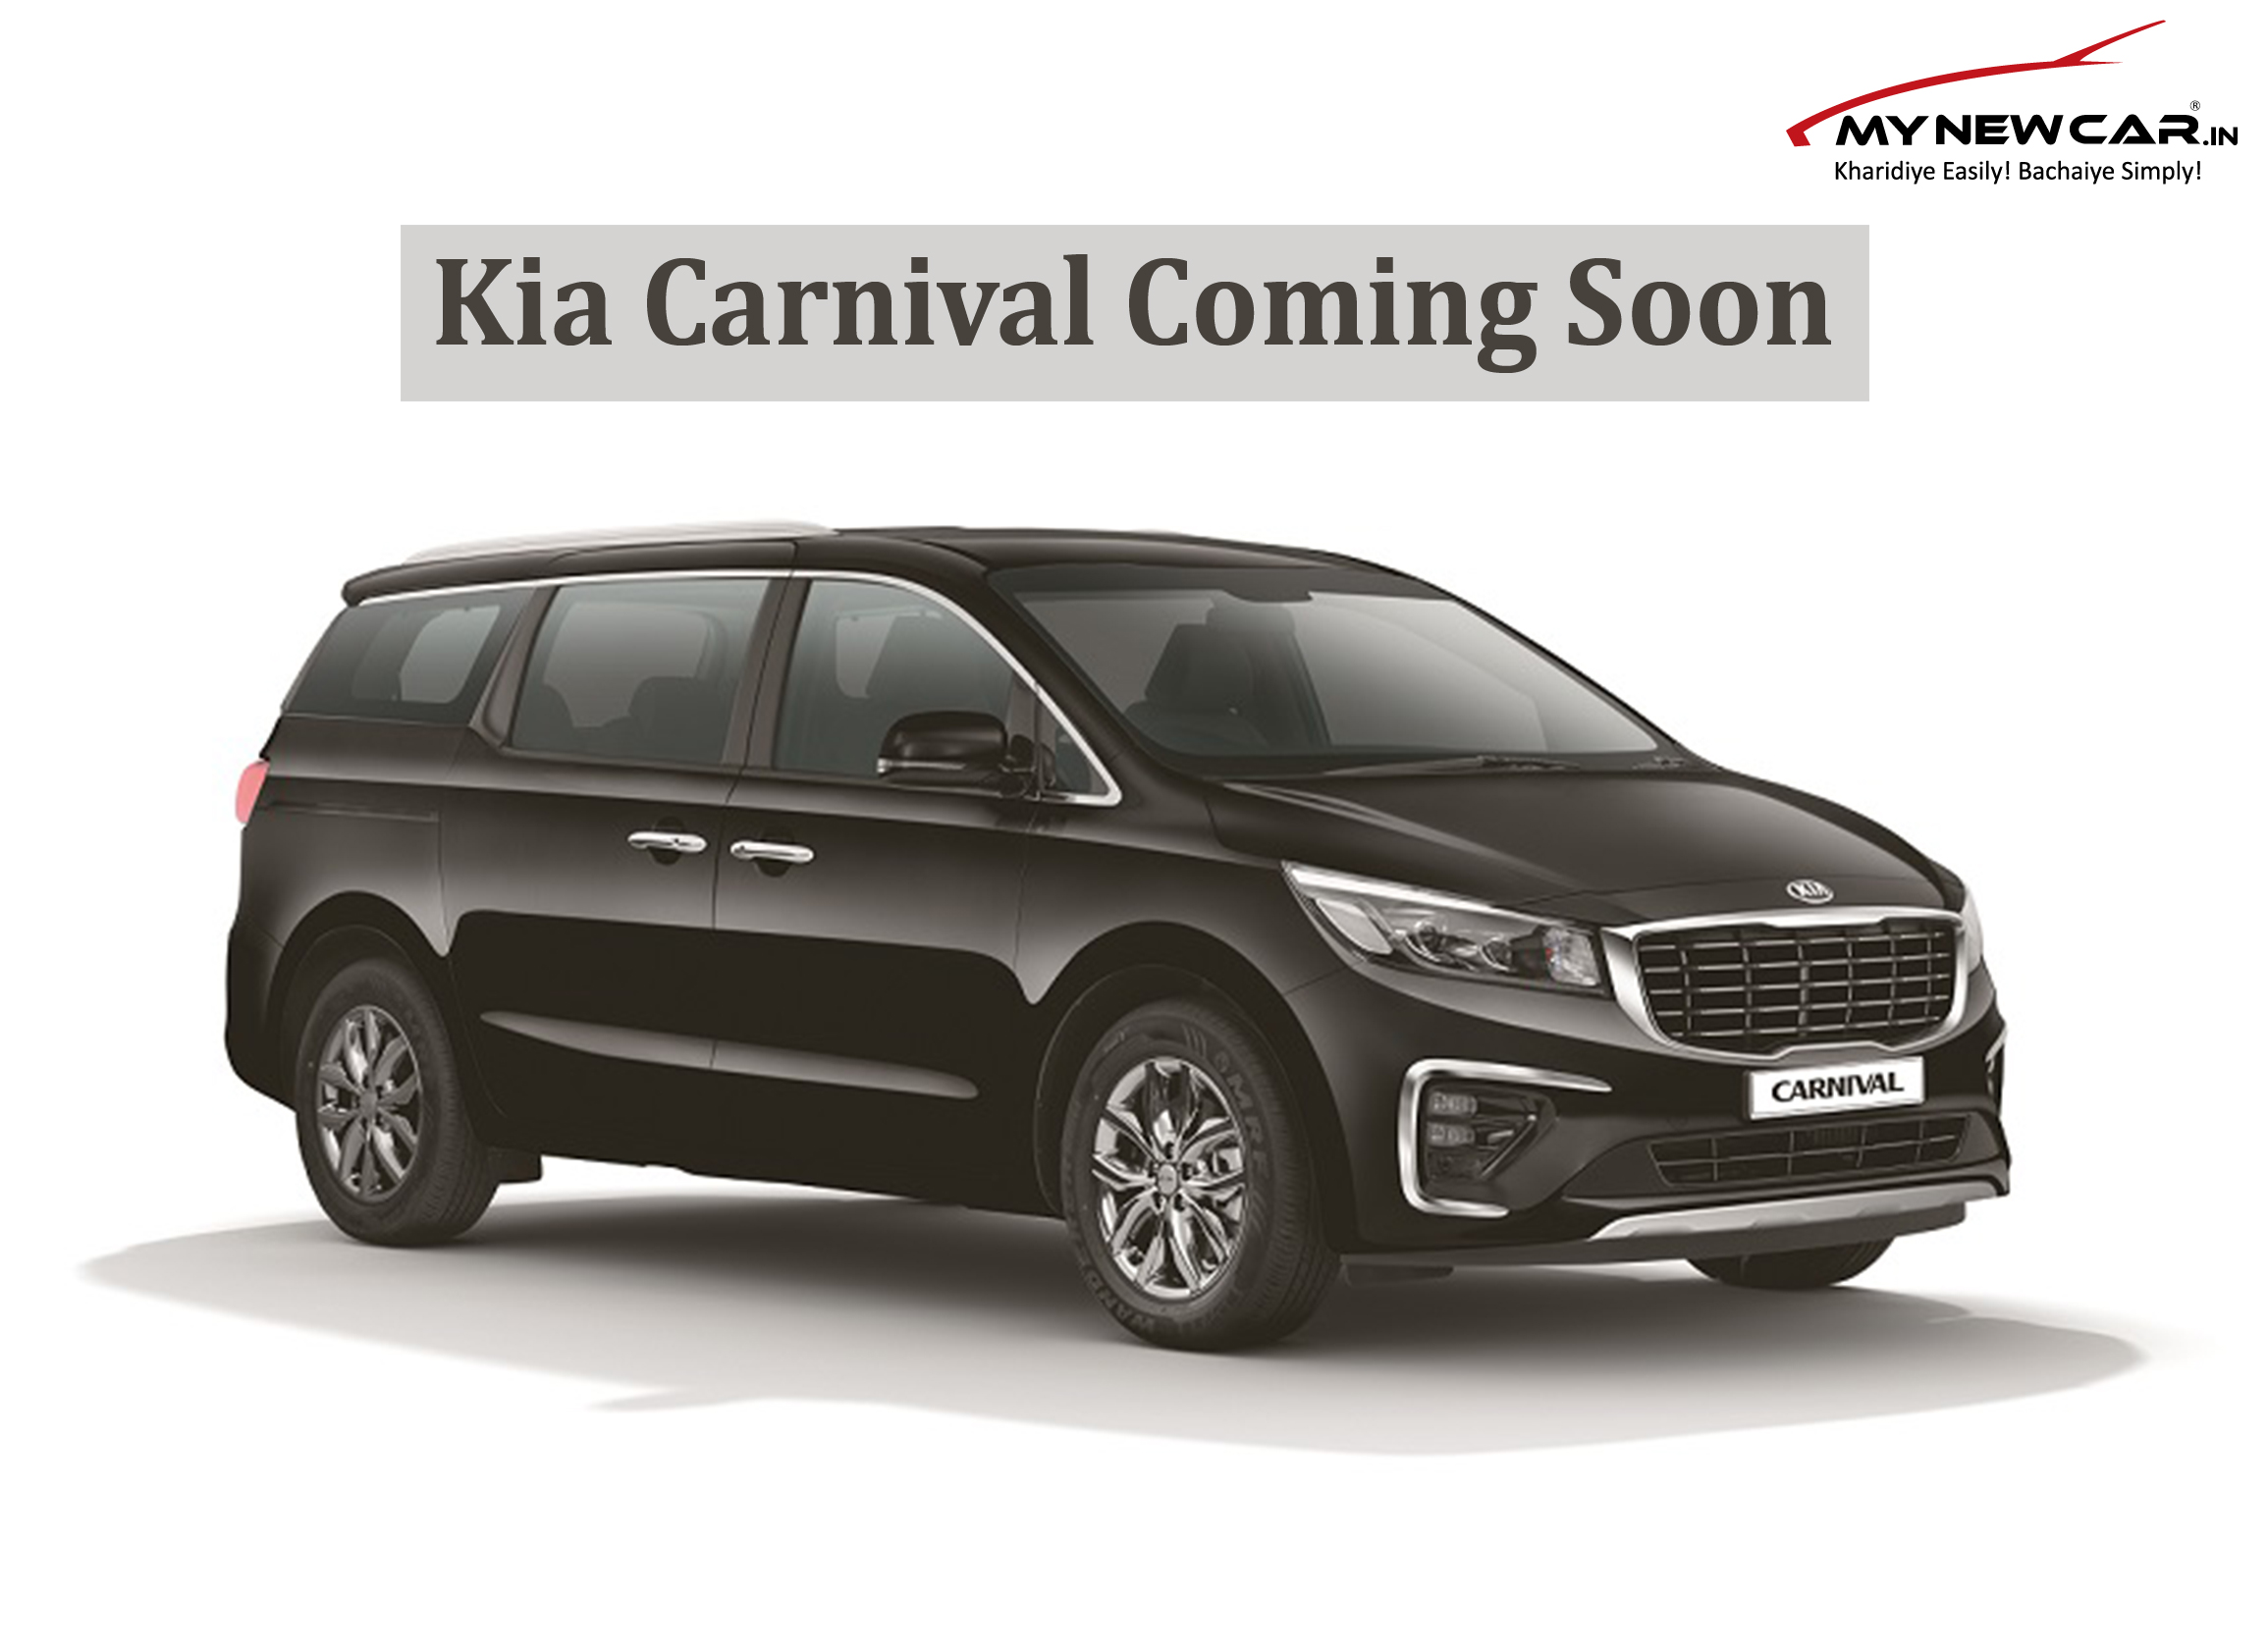 Kia Carnival Launching Soon : Engine, Trims and Seating Options